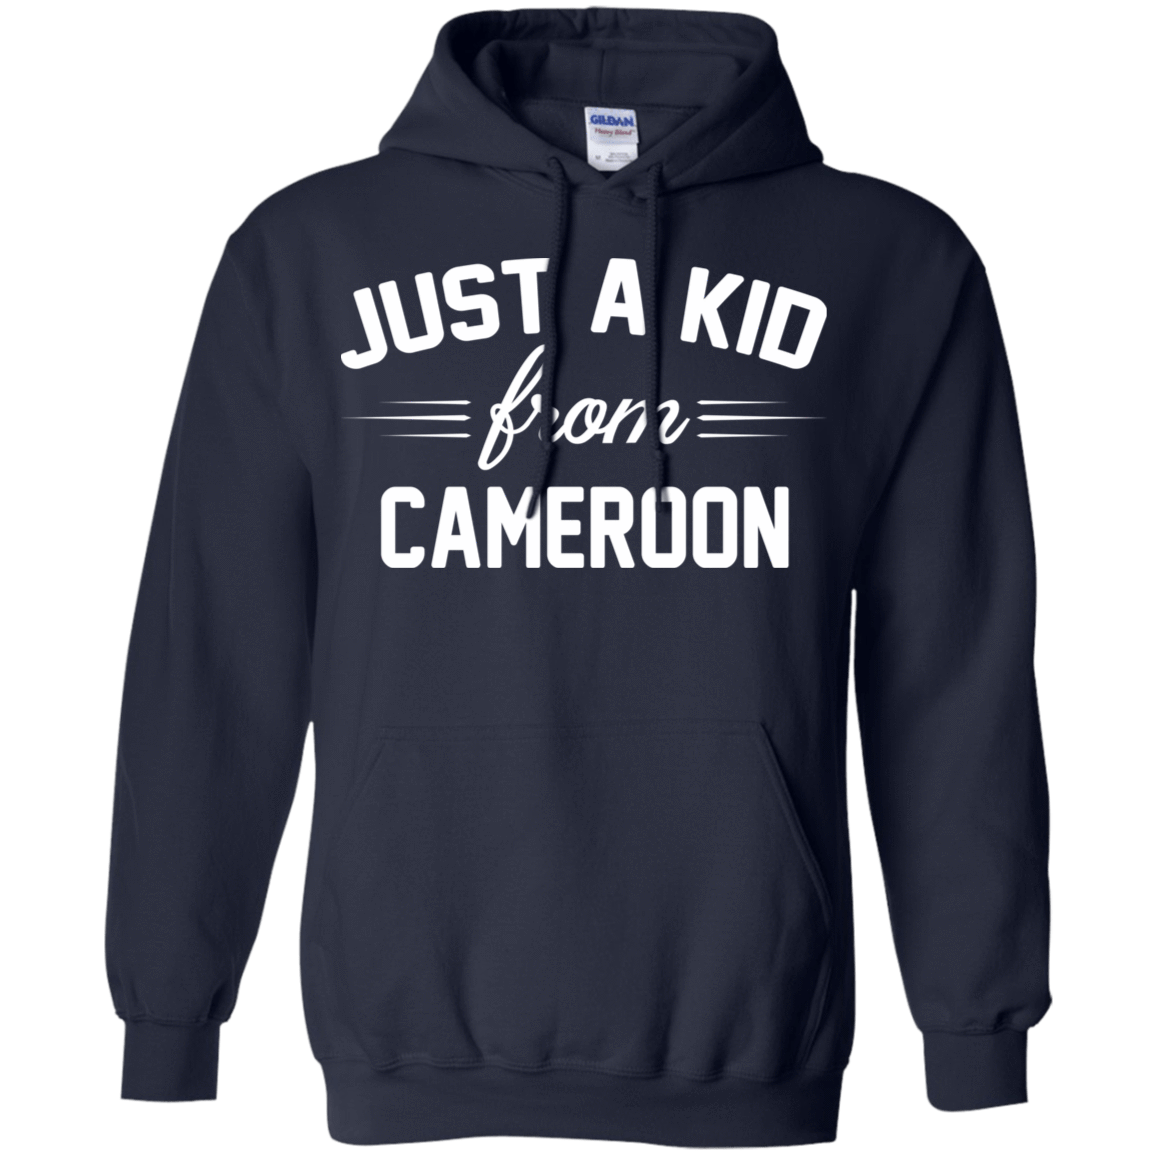 Just a Kid Store | Cameroon T-Shirts, Hoodie, Tank 541-4742-72092770-23135 - Tee Ript